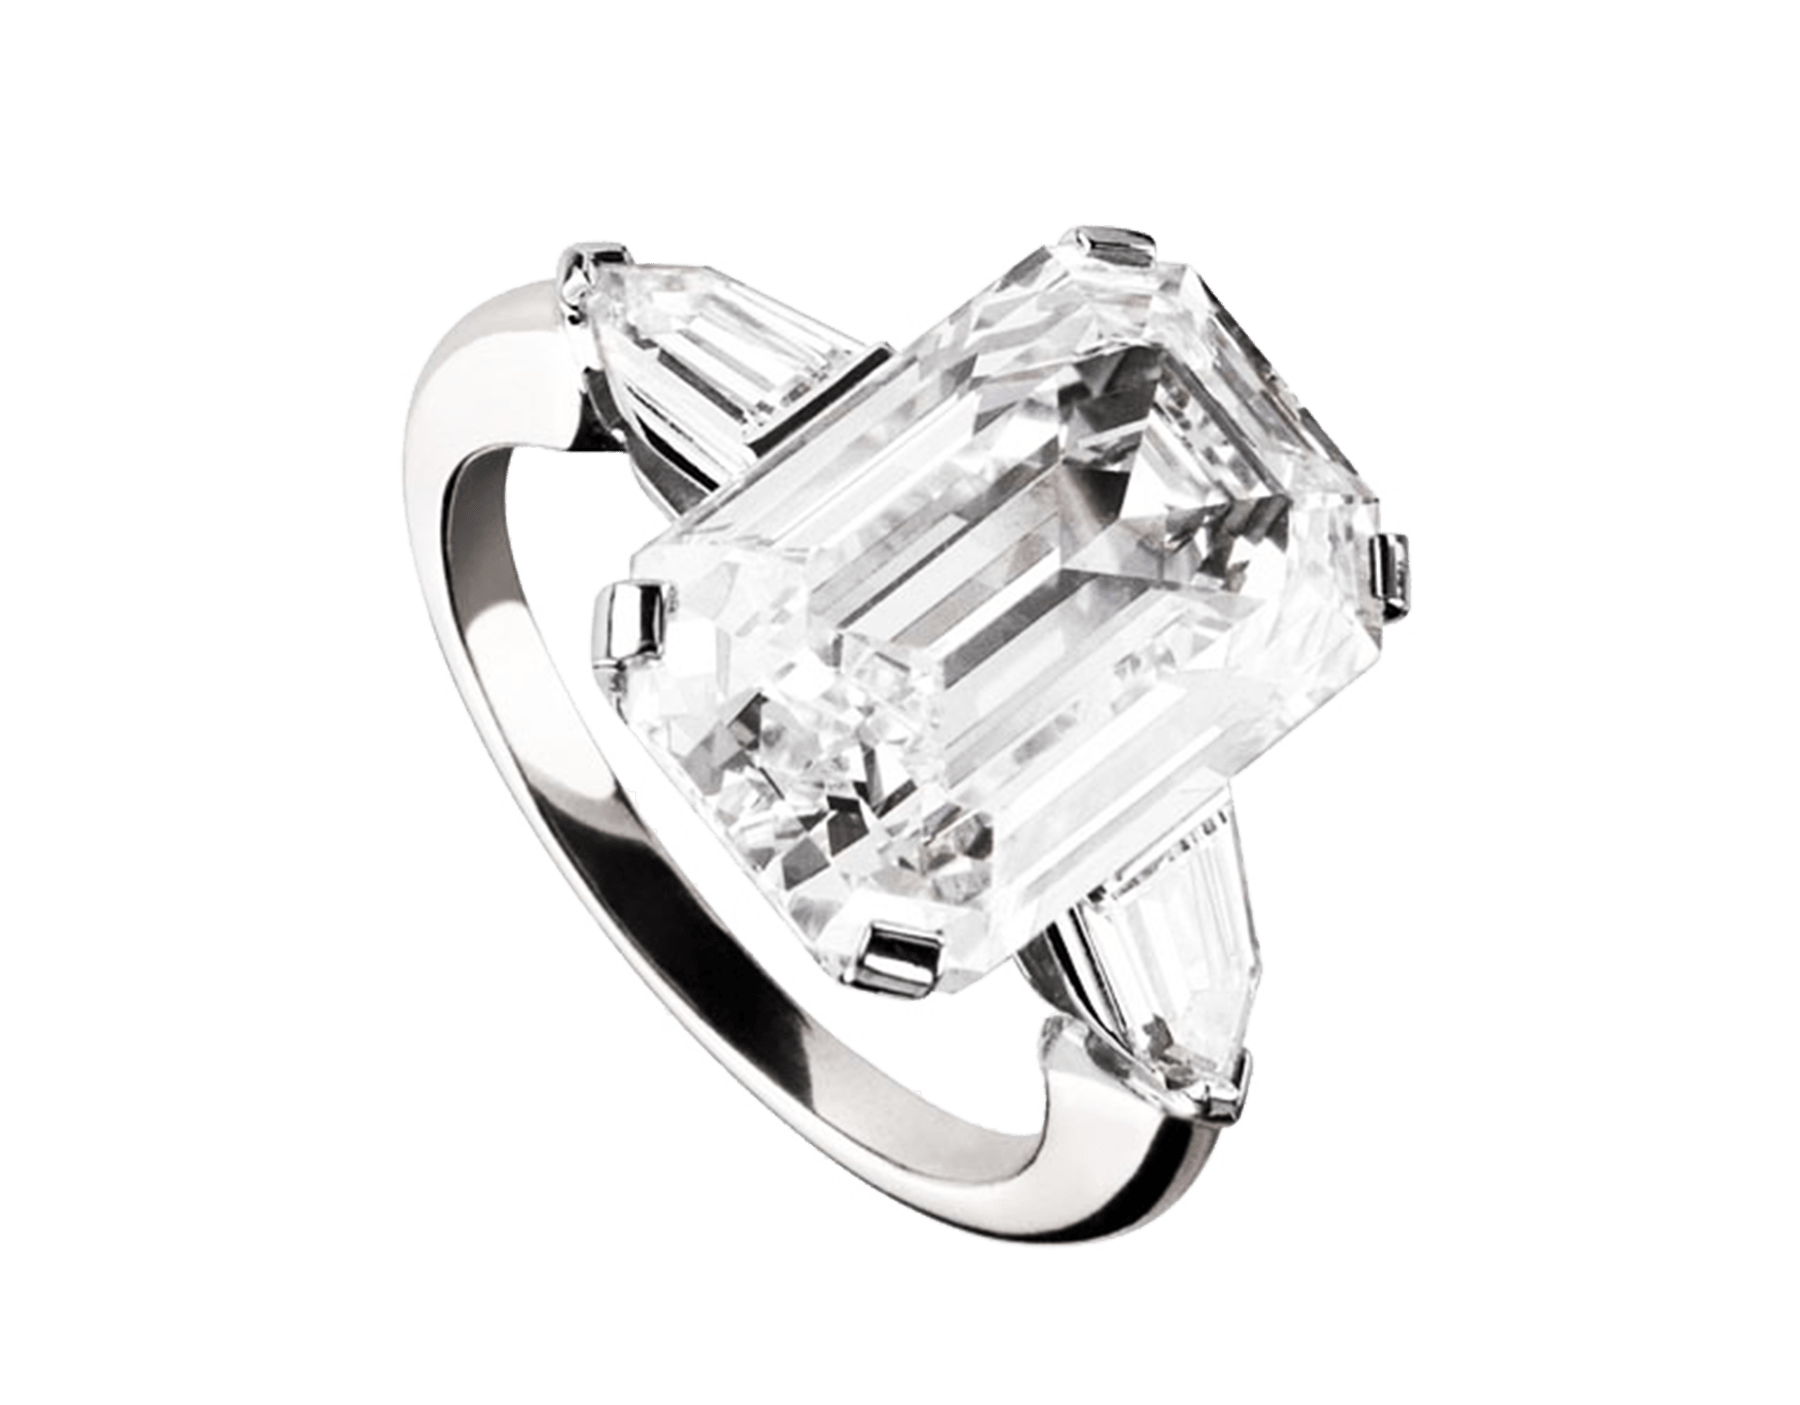 Griffe solitaire ring in platinum with emerald cut diamond and two side diamonds. Available from 1 ct. A classic setting that allows the beauty and the pureness of the solitaire diamond to assert itself 331795 image 1